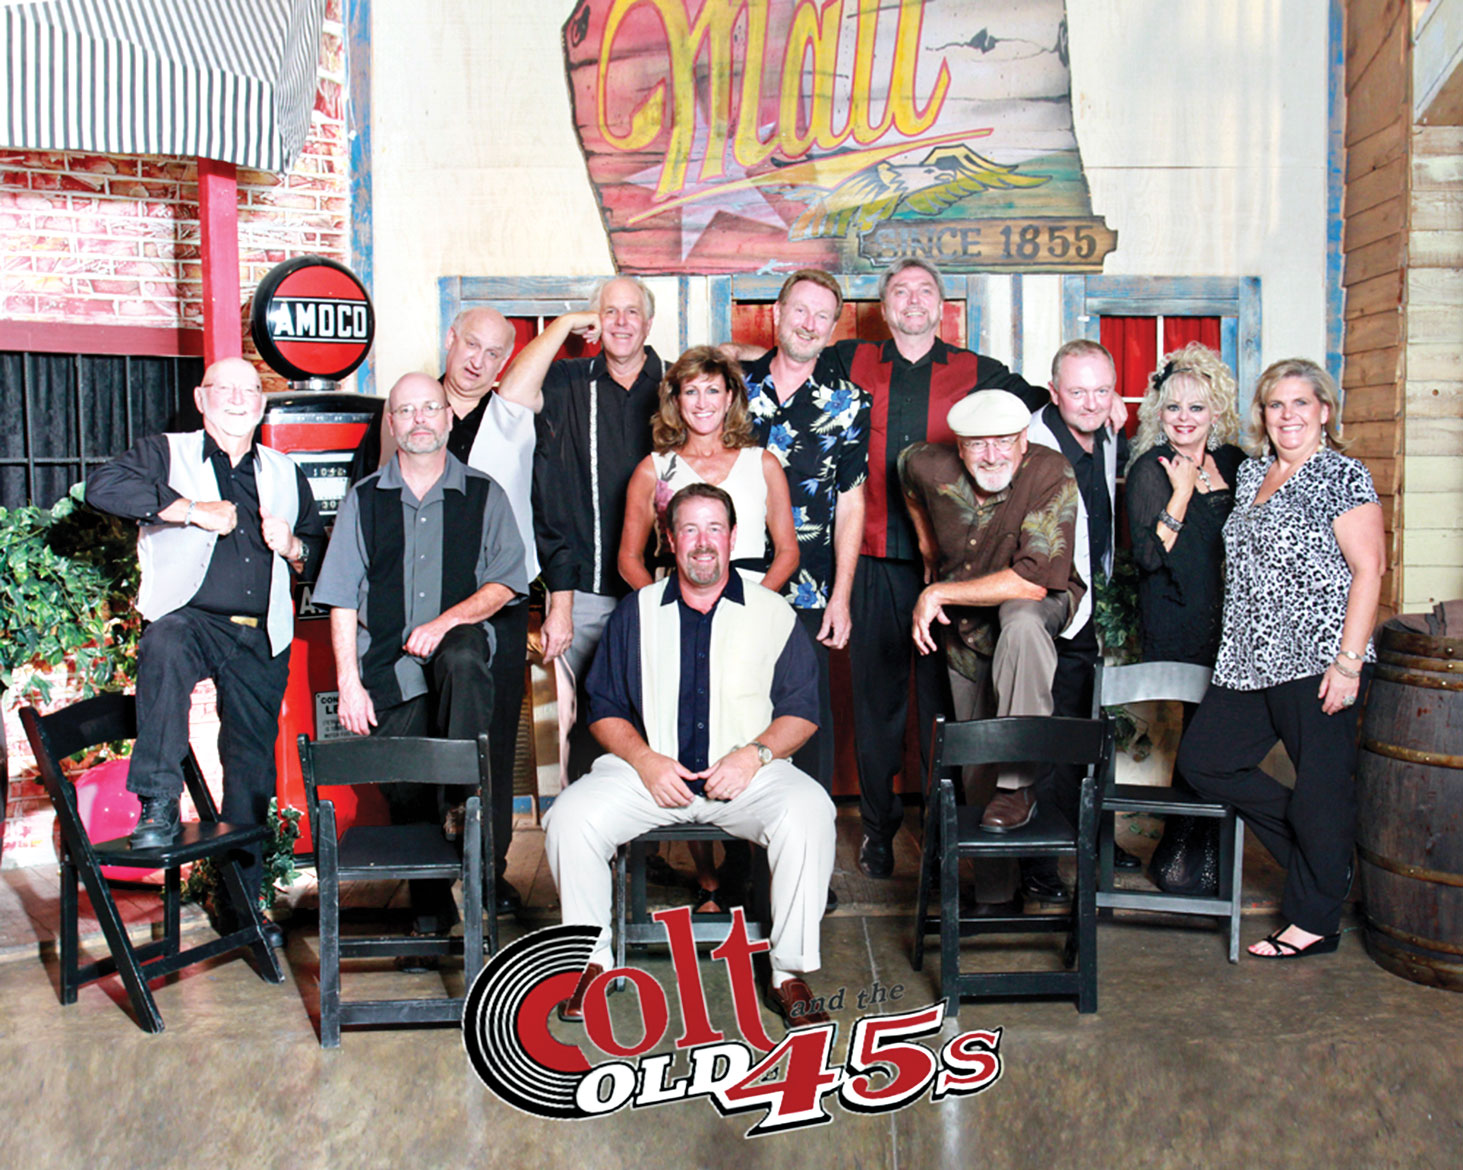 The Colt and the Old 45s will perform July 16.